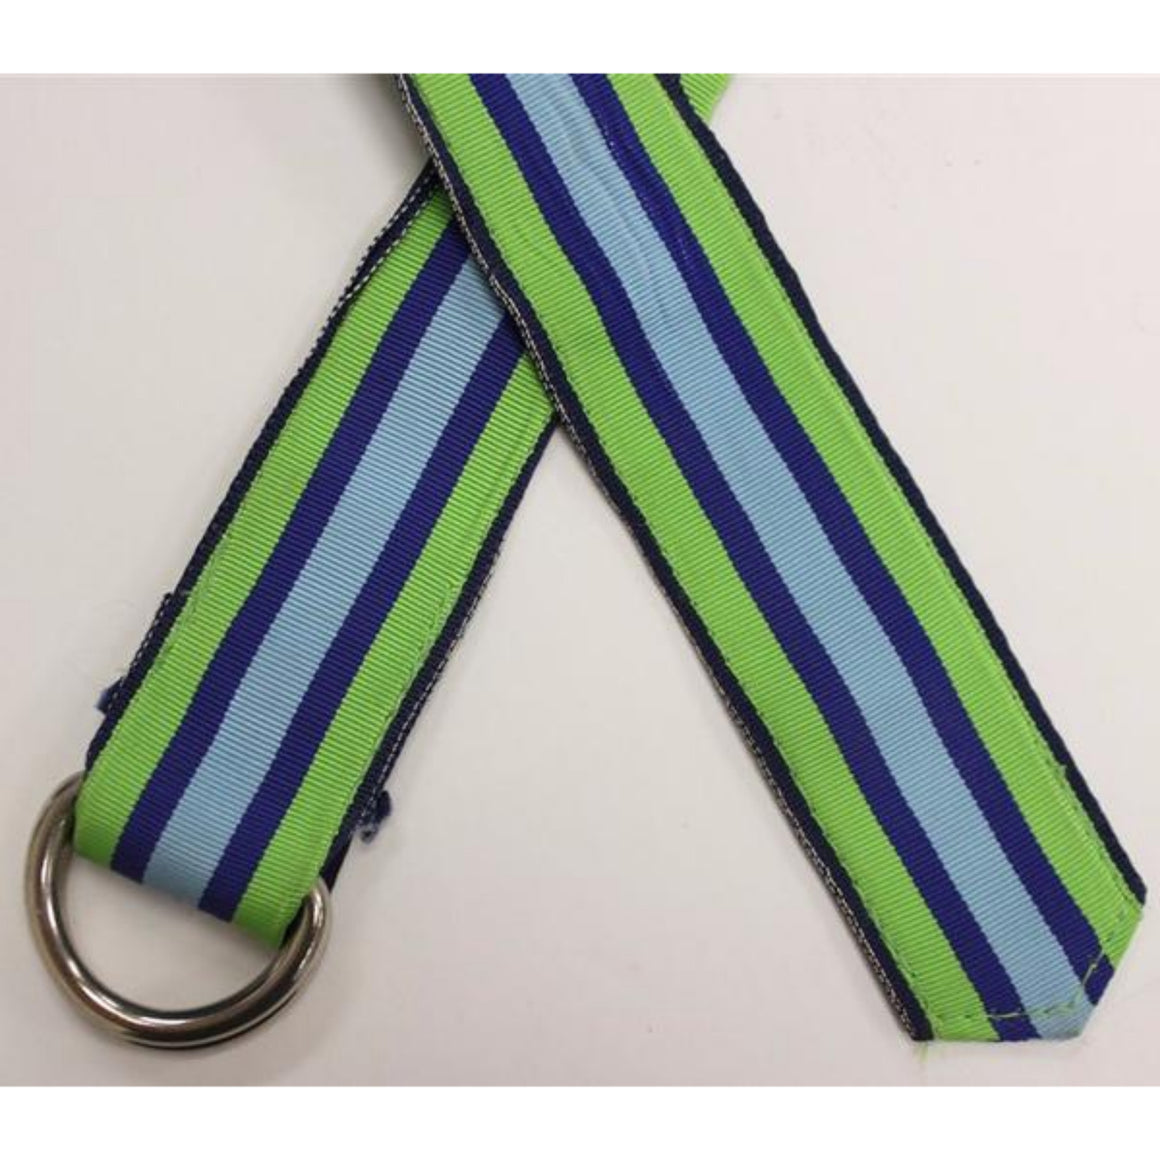 Paul Stuart Grosgrain Ribbon Belt w/ Royal Blue, Lime Green & Light Blue Stripes Sz: XL